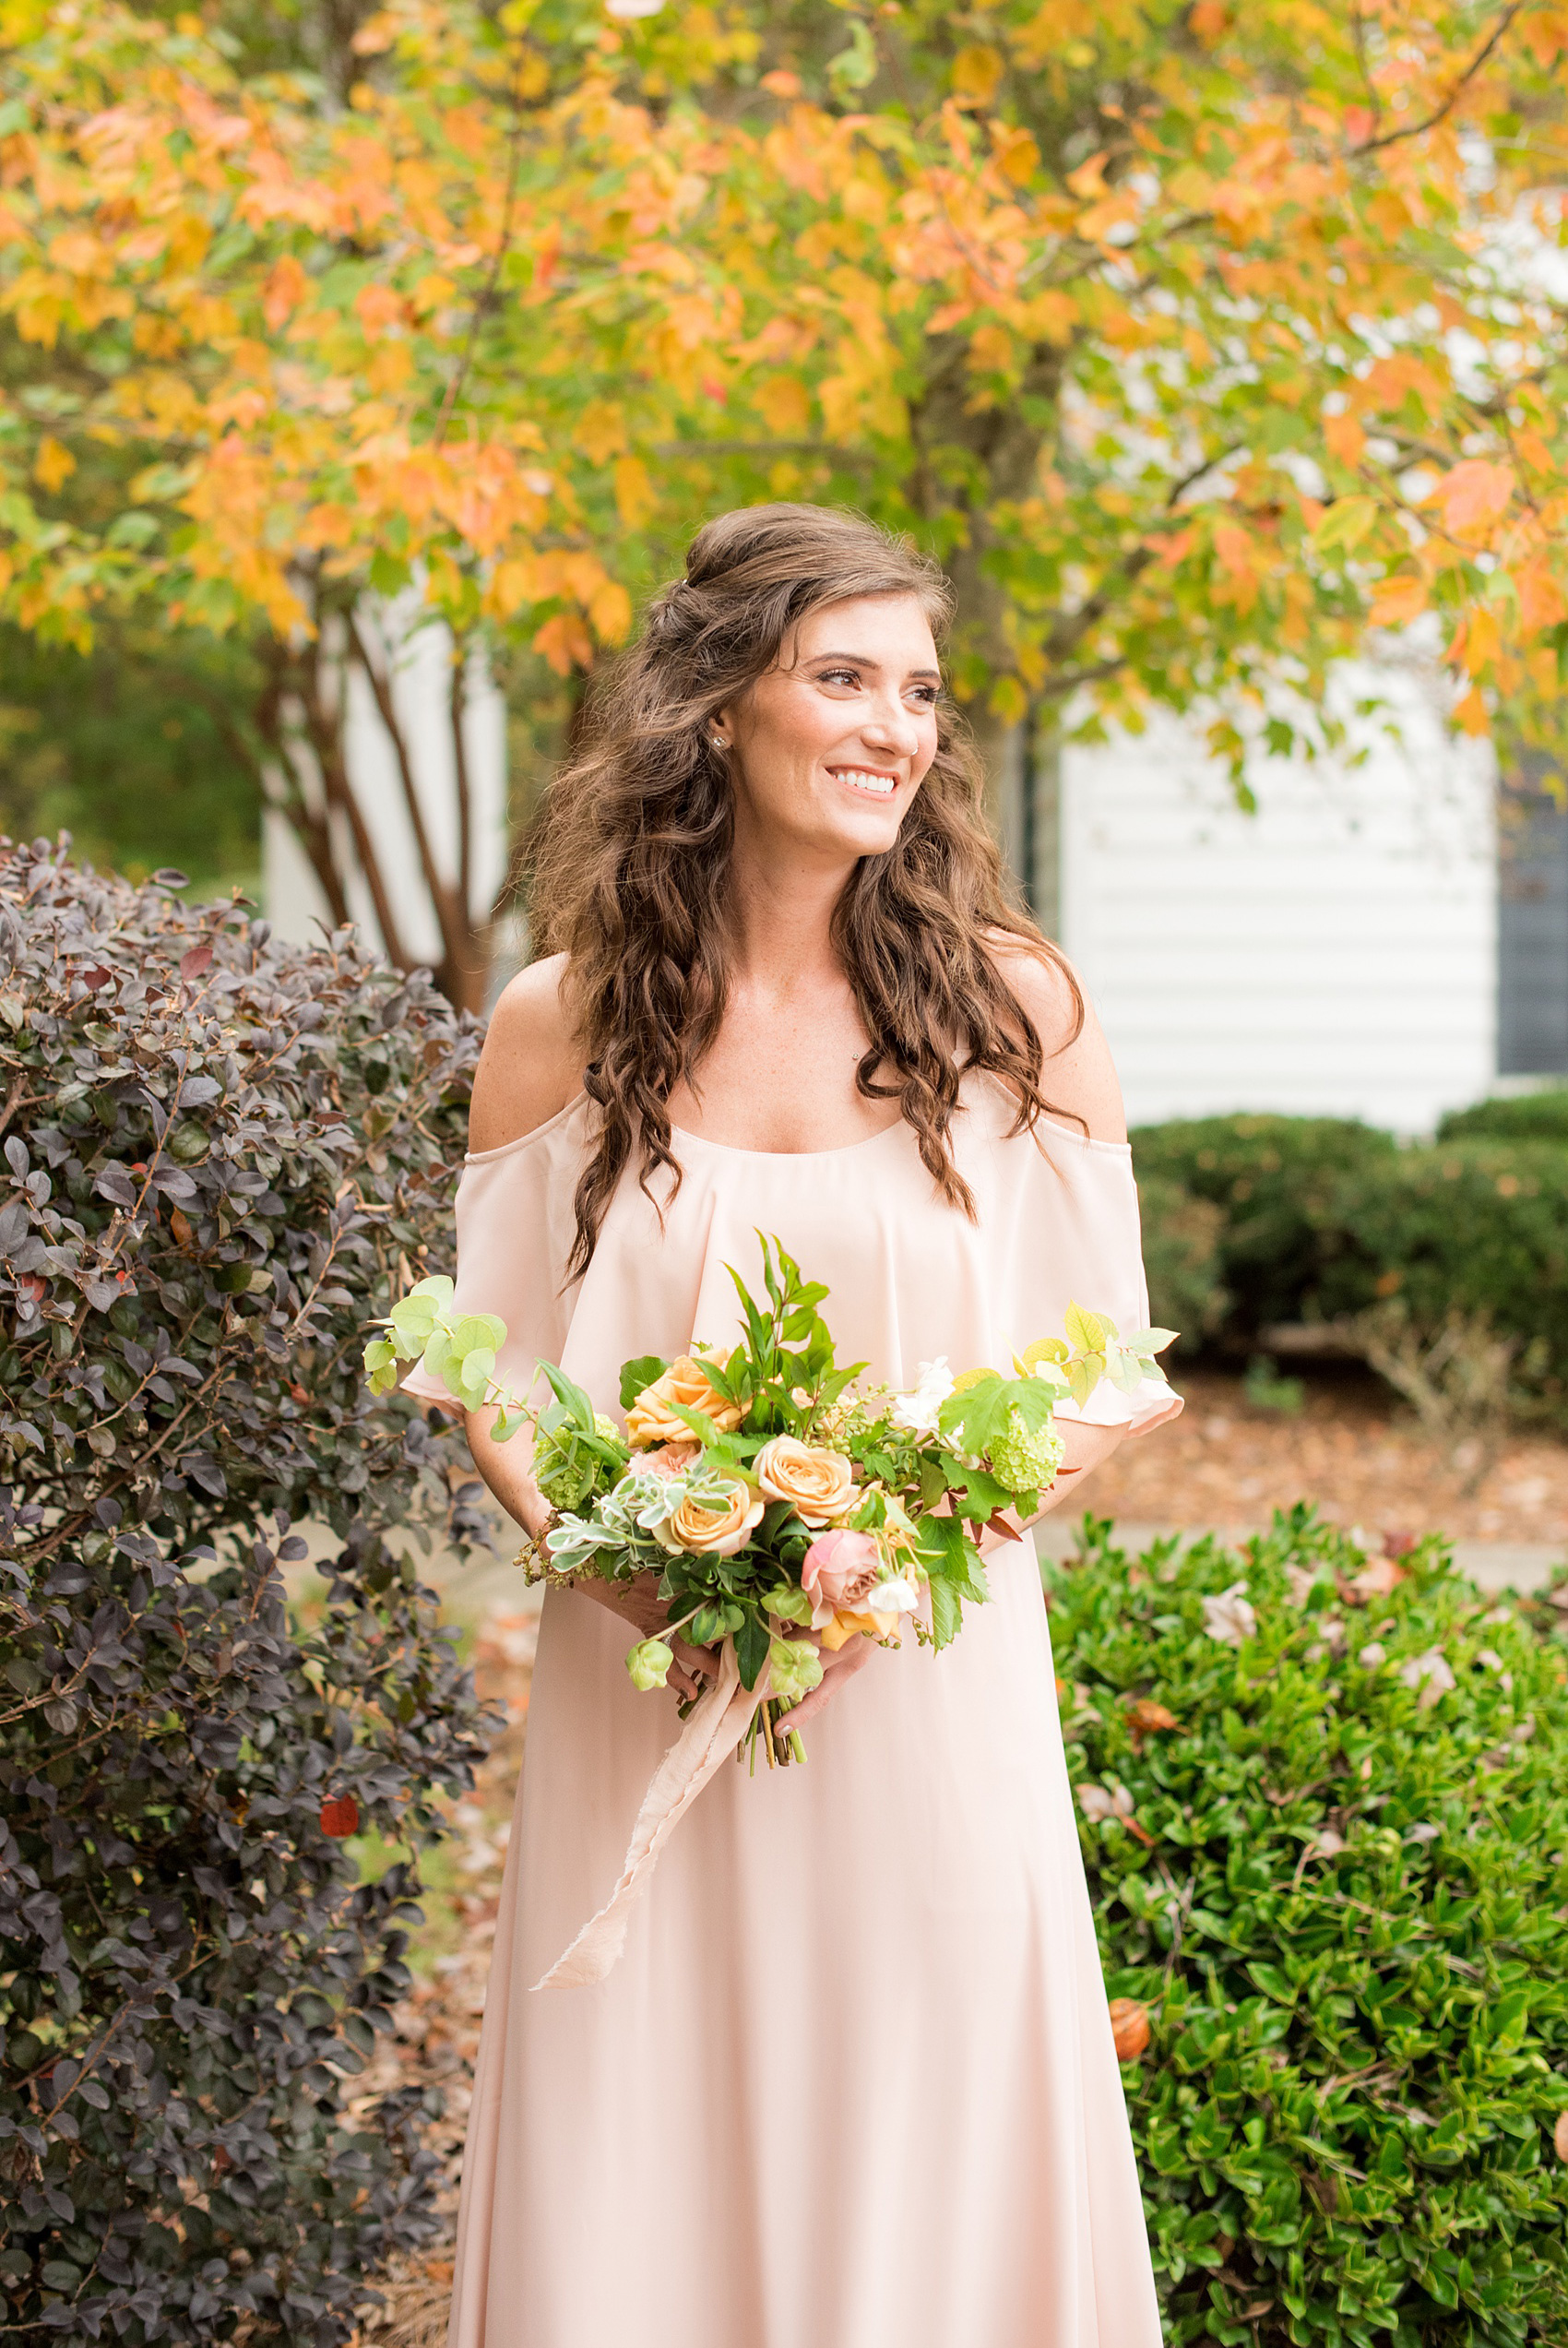 Mikkel Paige Photography photos from a wedding at Leslie-Alford Mims House in North Carolina. Picture of a bridesmaid in a light pink chiffon gown with peek-a-boo shoulders for a fall Mad Dash Weddings event.